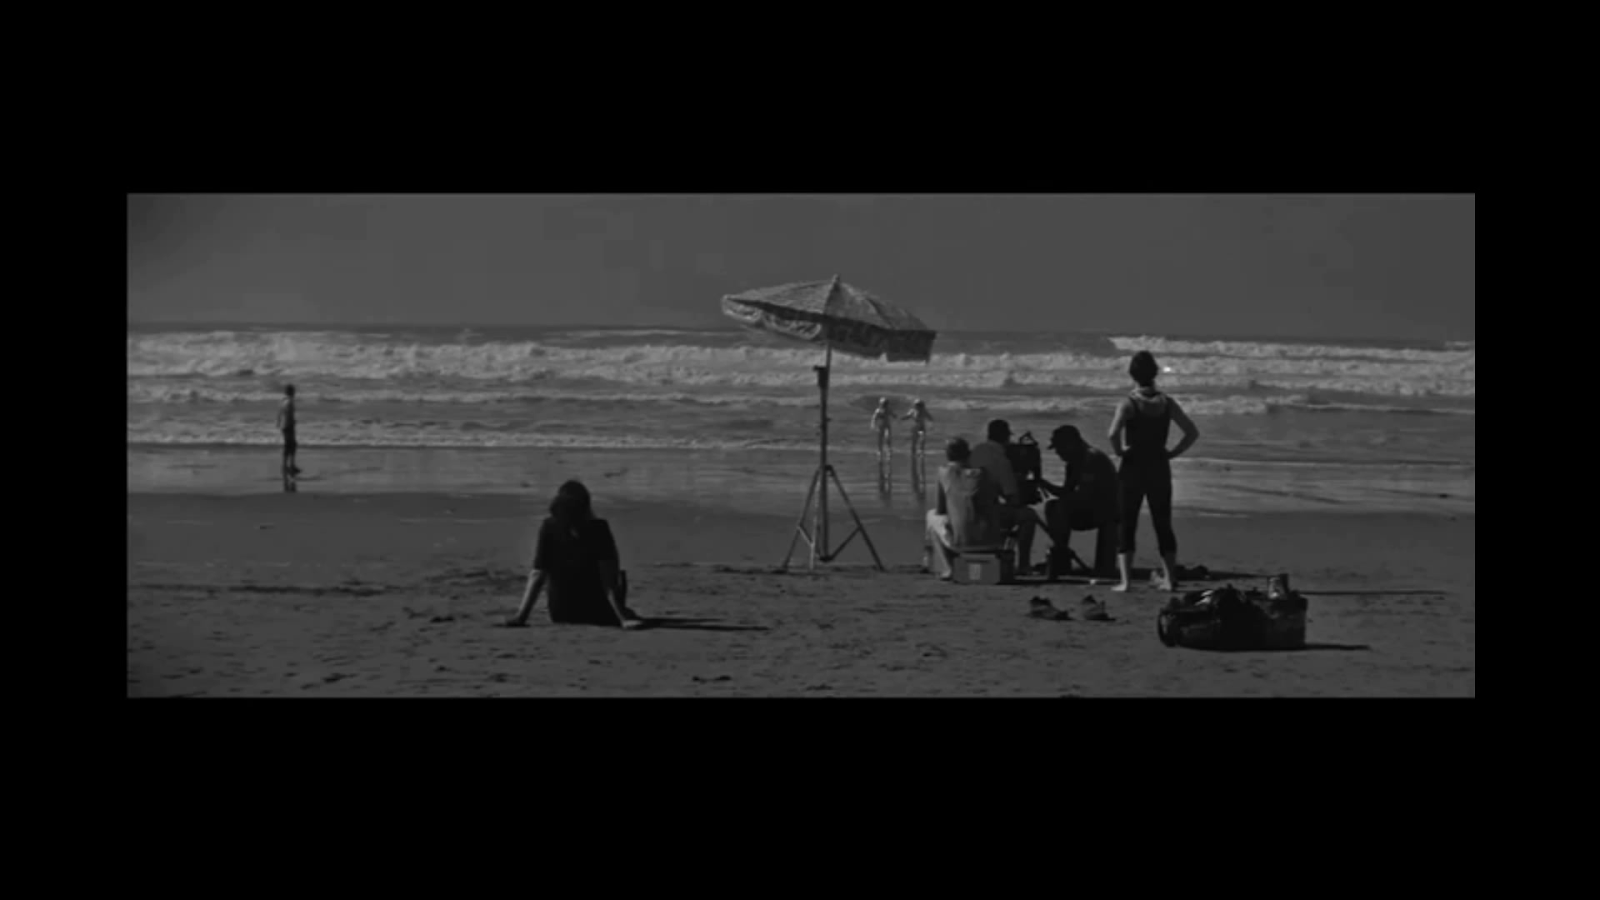 a distant episode Shot on the otherworldly beaches of morocco in silvery 16mm scope, the film transforms behind-the-scenes footage (of shezad dawood's production of 'towards the possible film' commissioned by film and video umbrella) into a dreamy film fragment depicting sci-fi incursions into a mythic landscape.